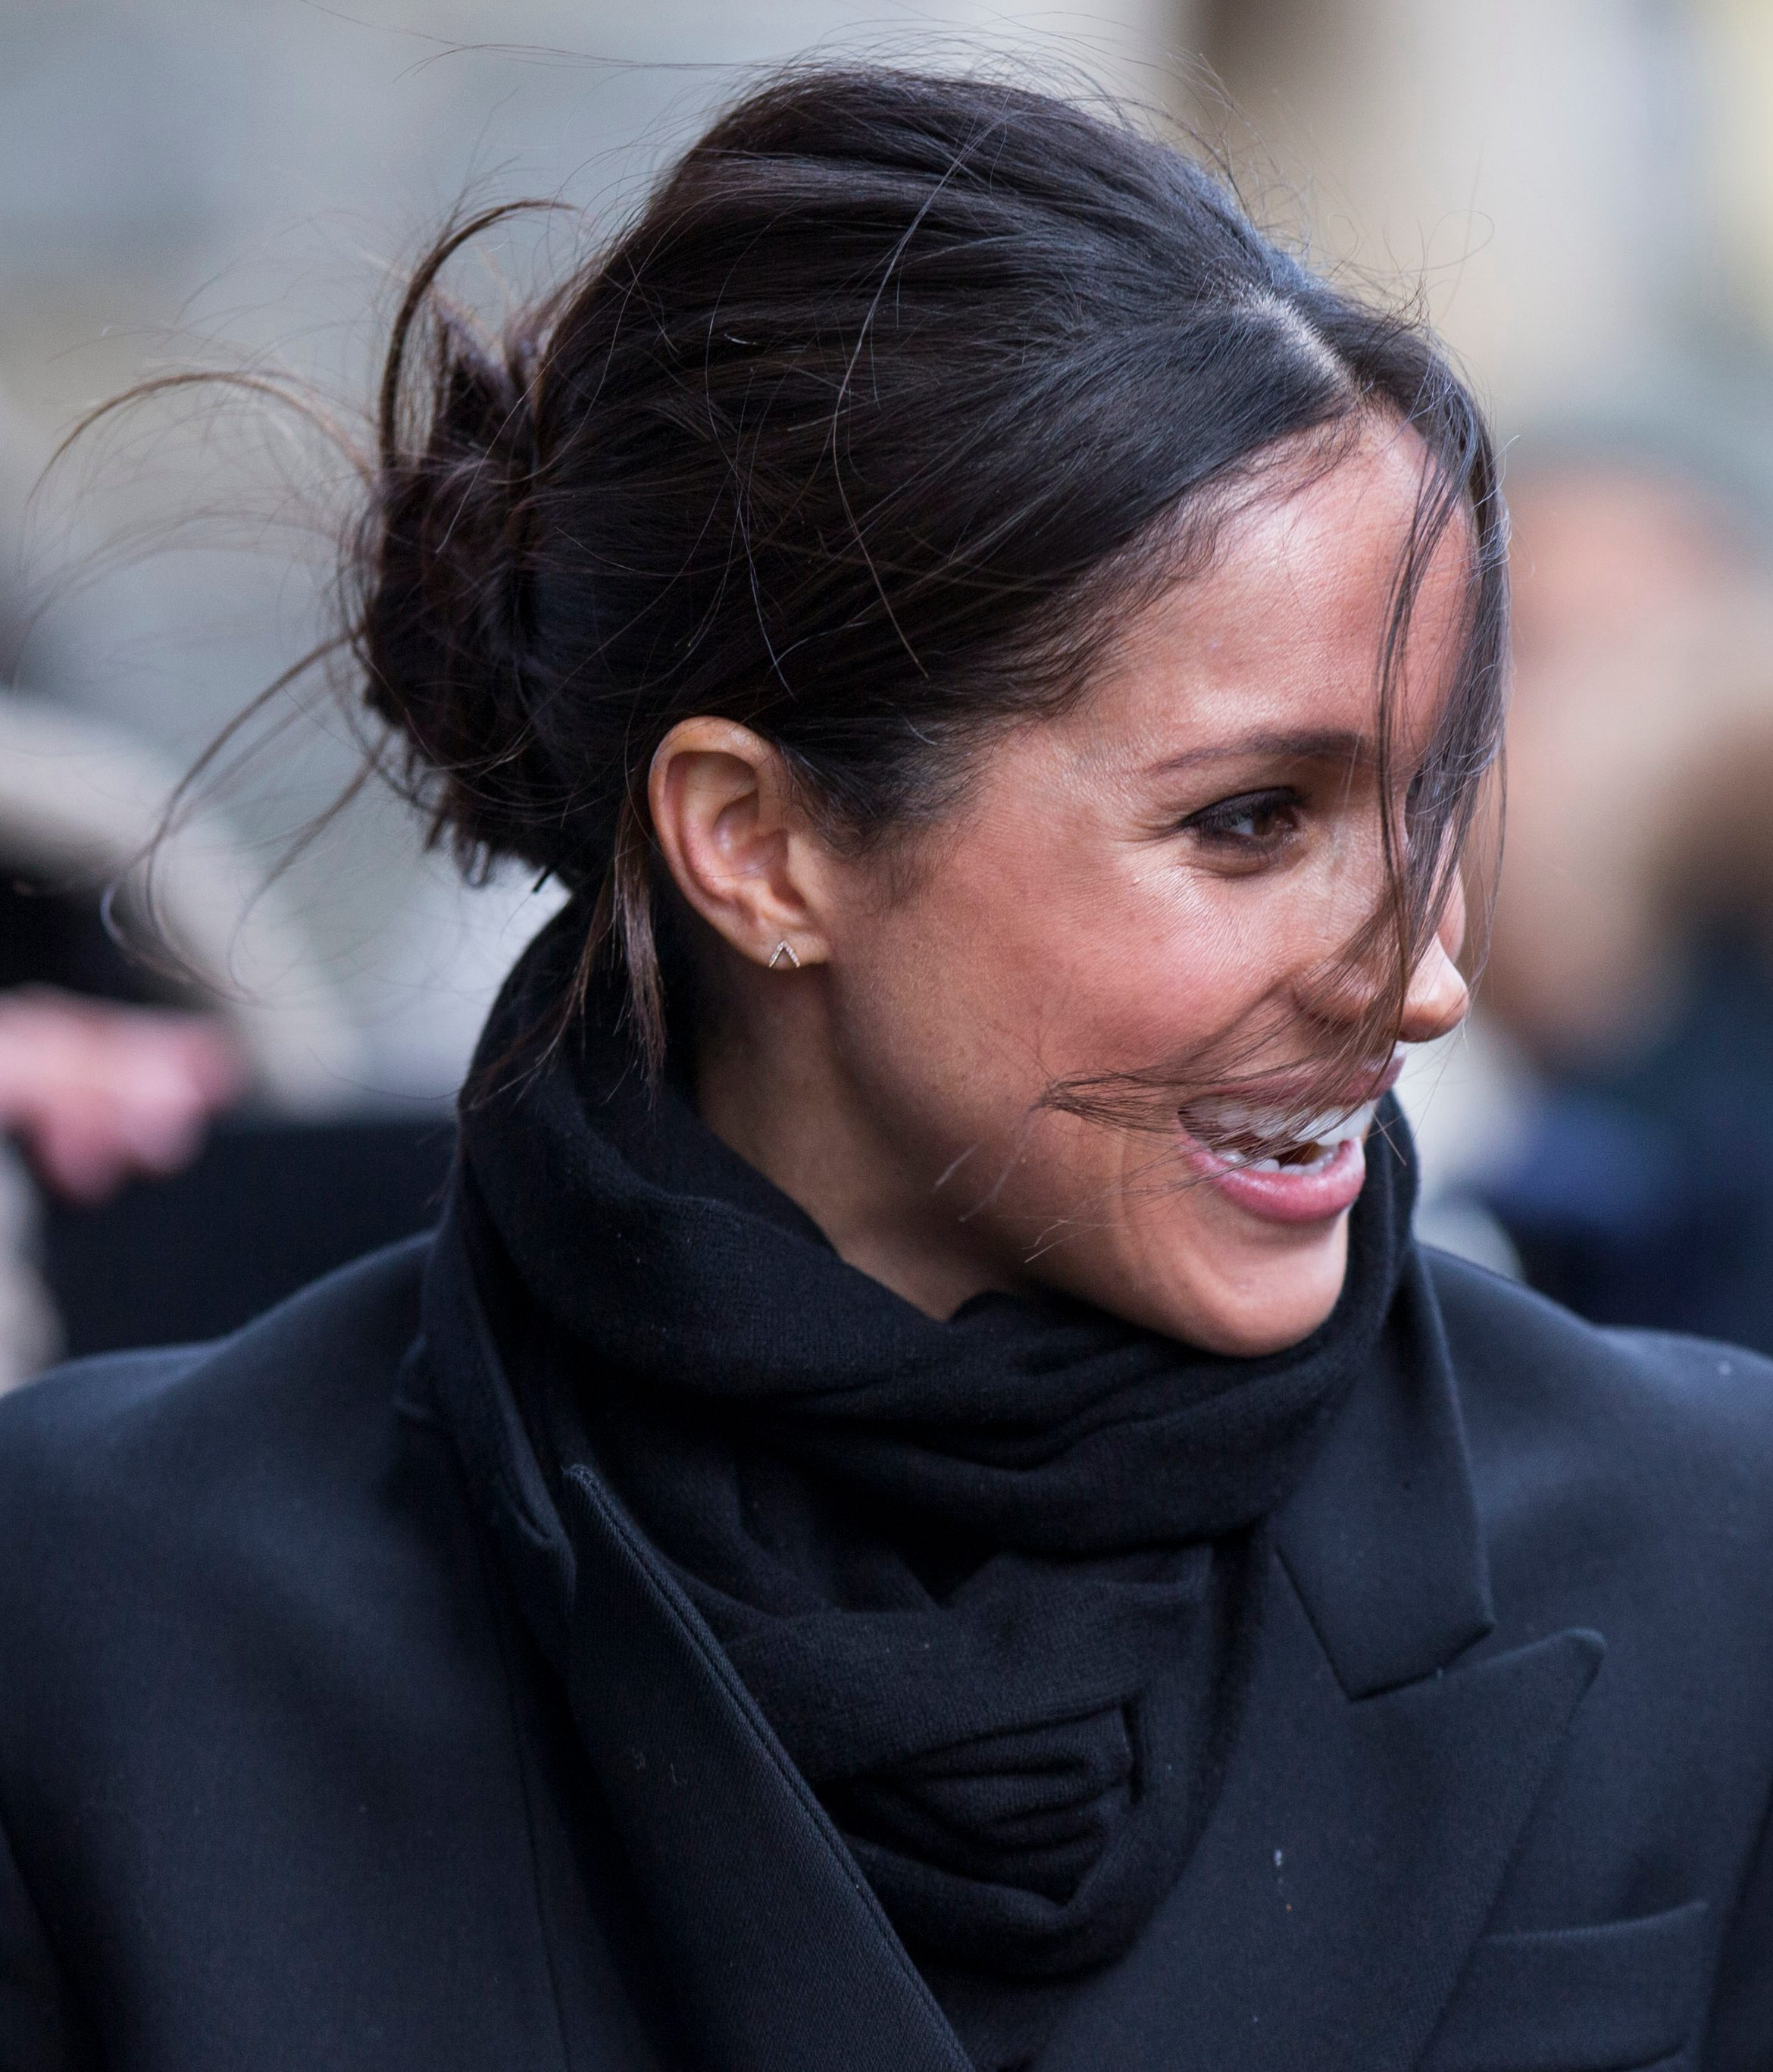 Meghan Markle's Casual yet Royal Updo